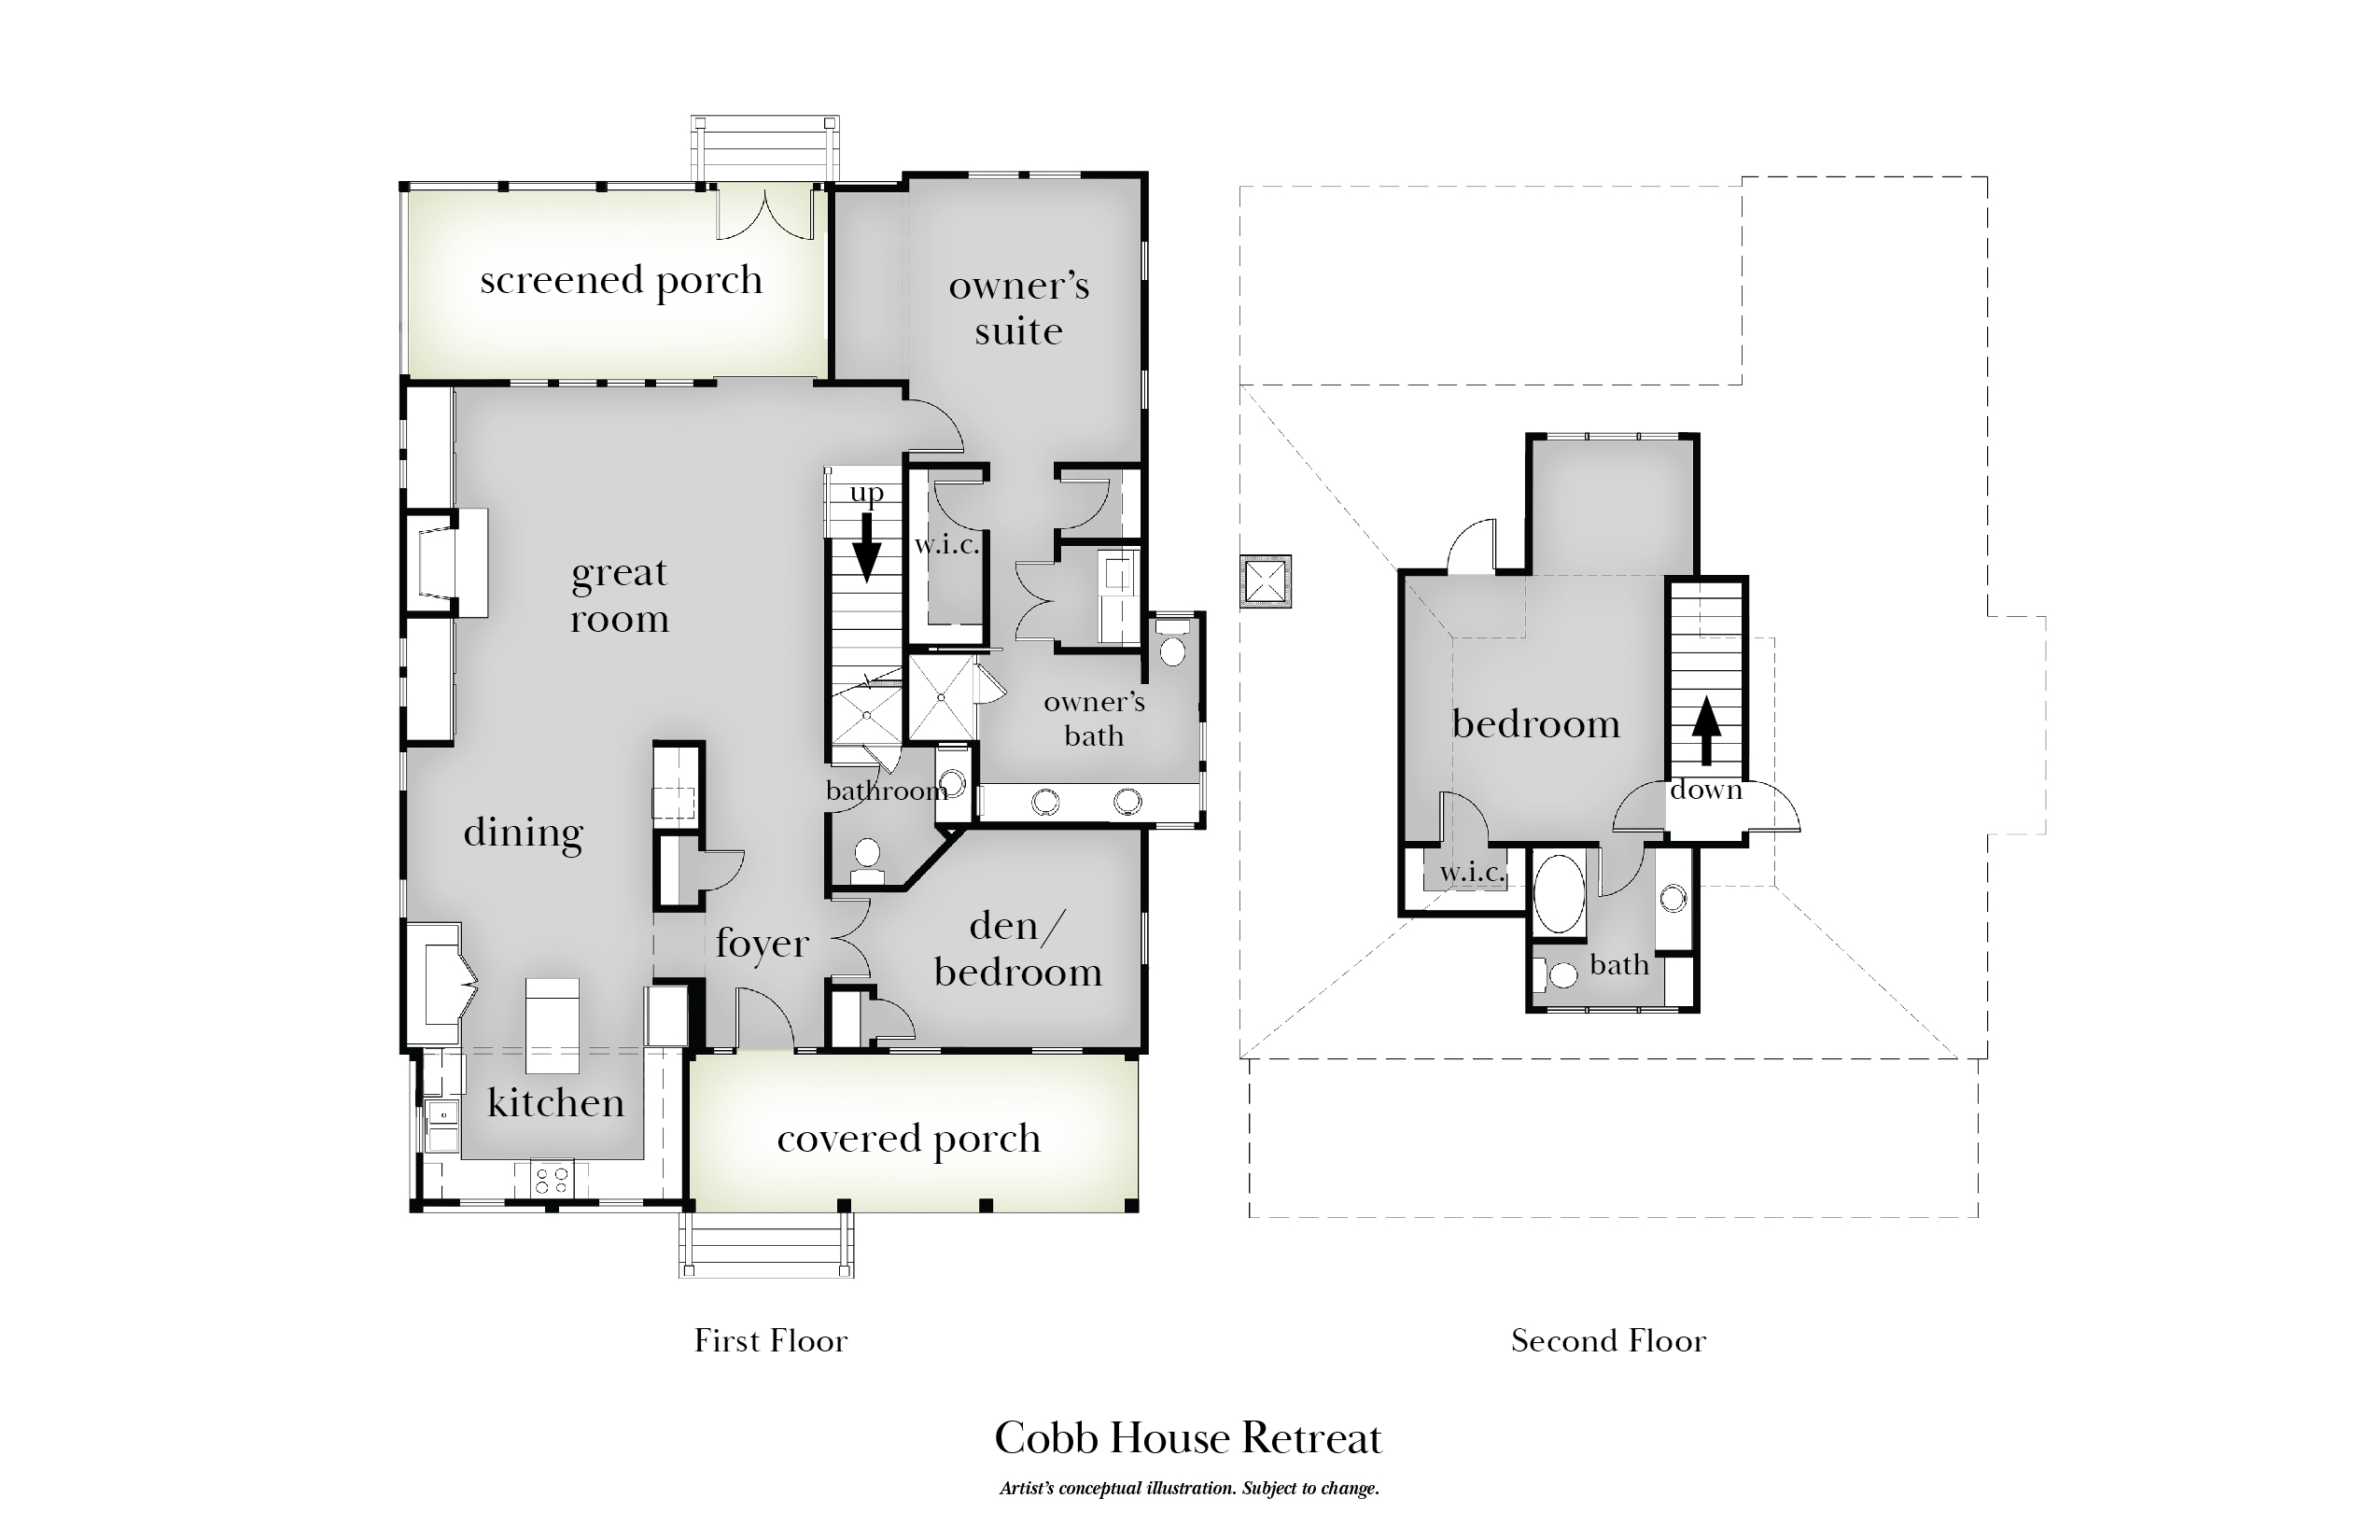 CobbHouse_Revised_KCASH_2021_03_16-01